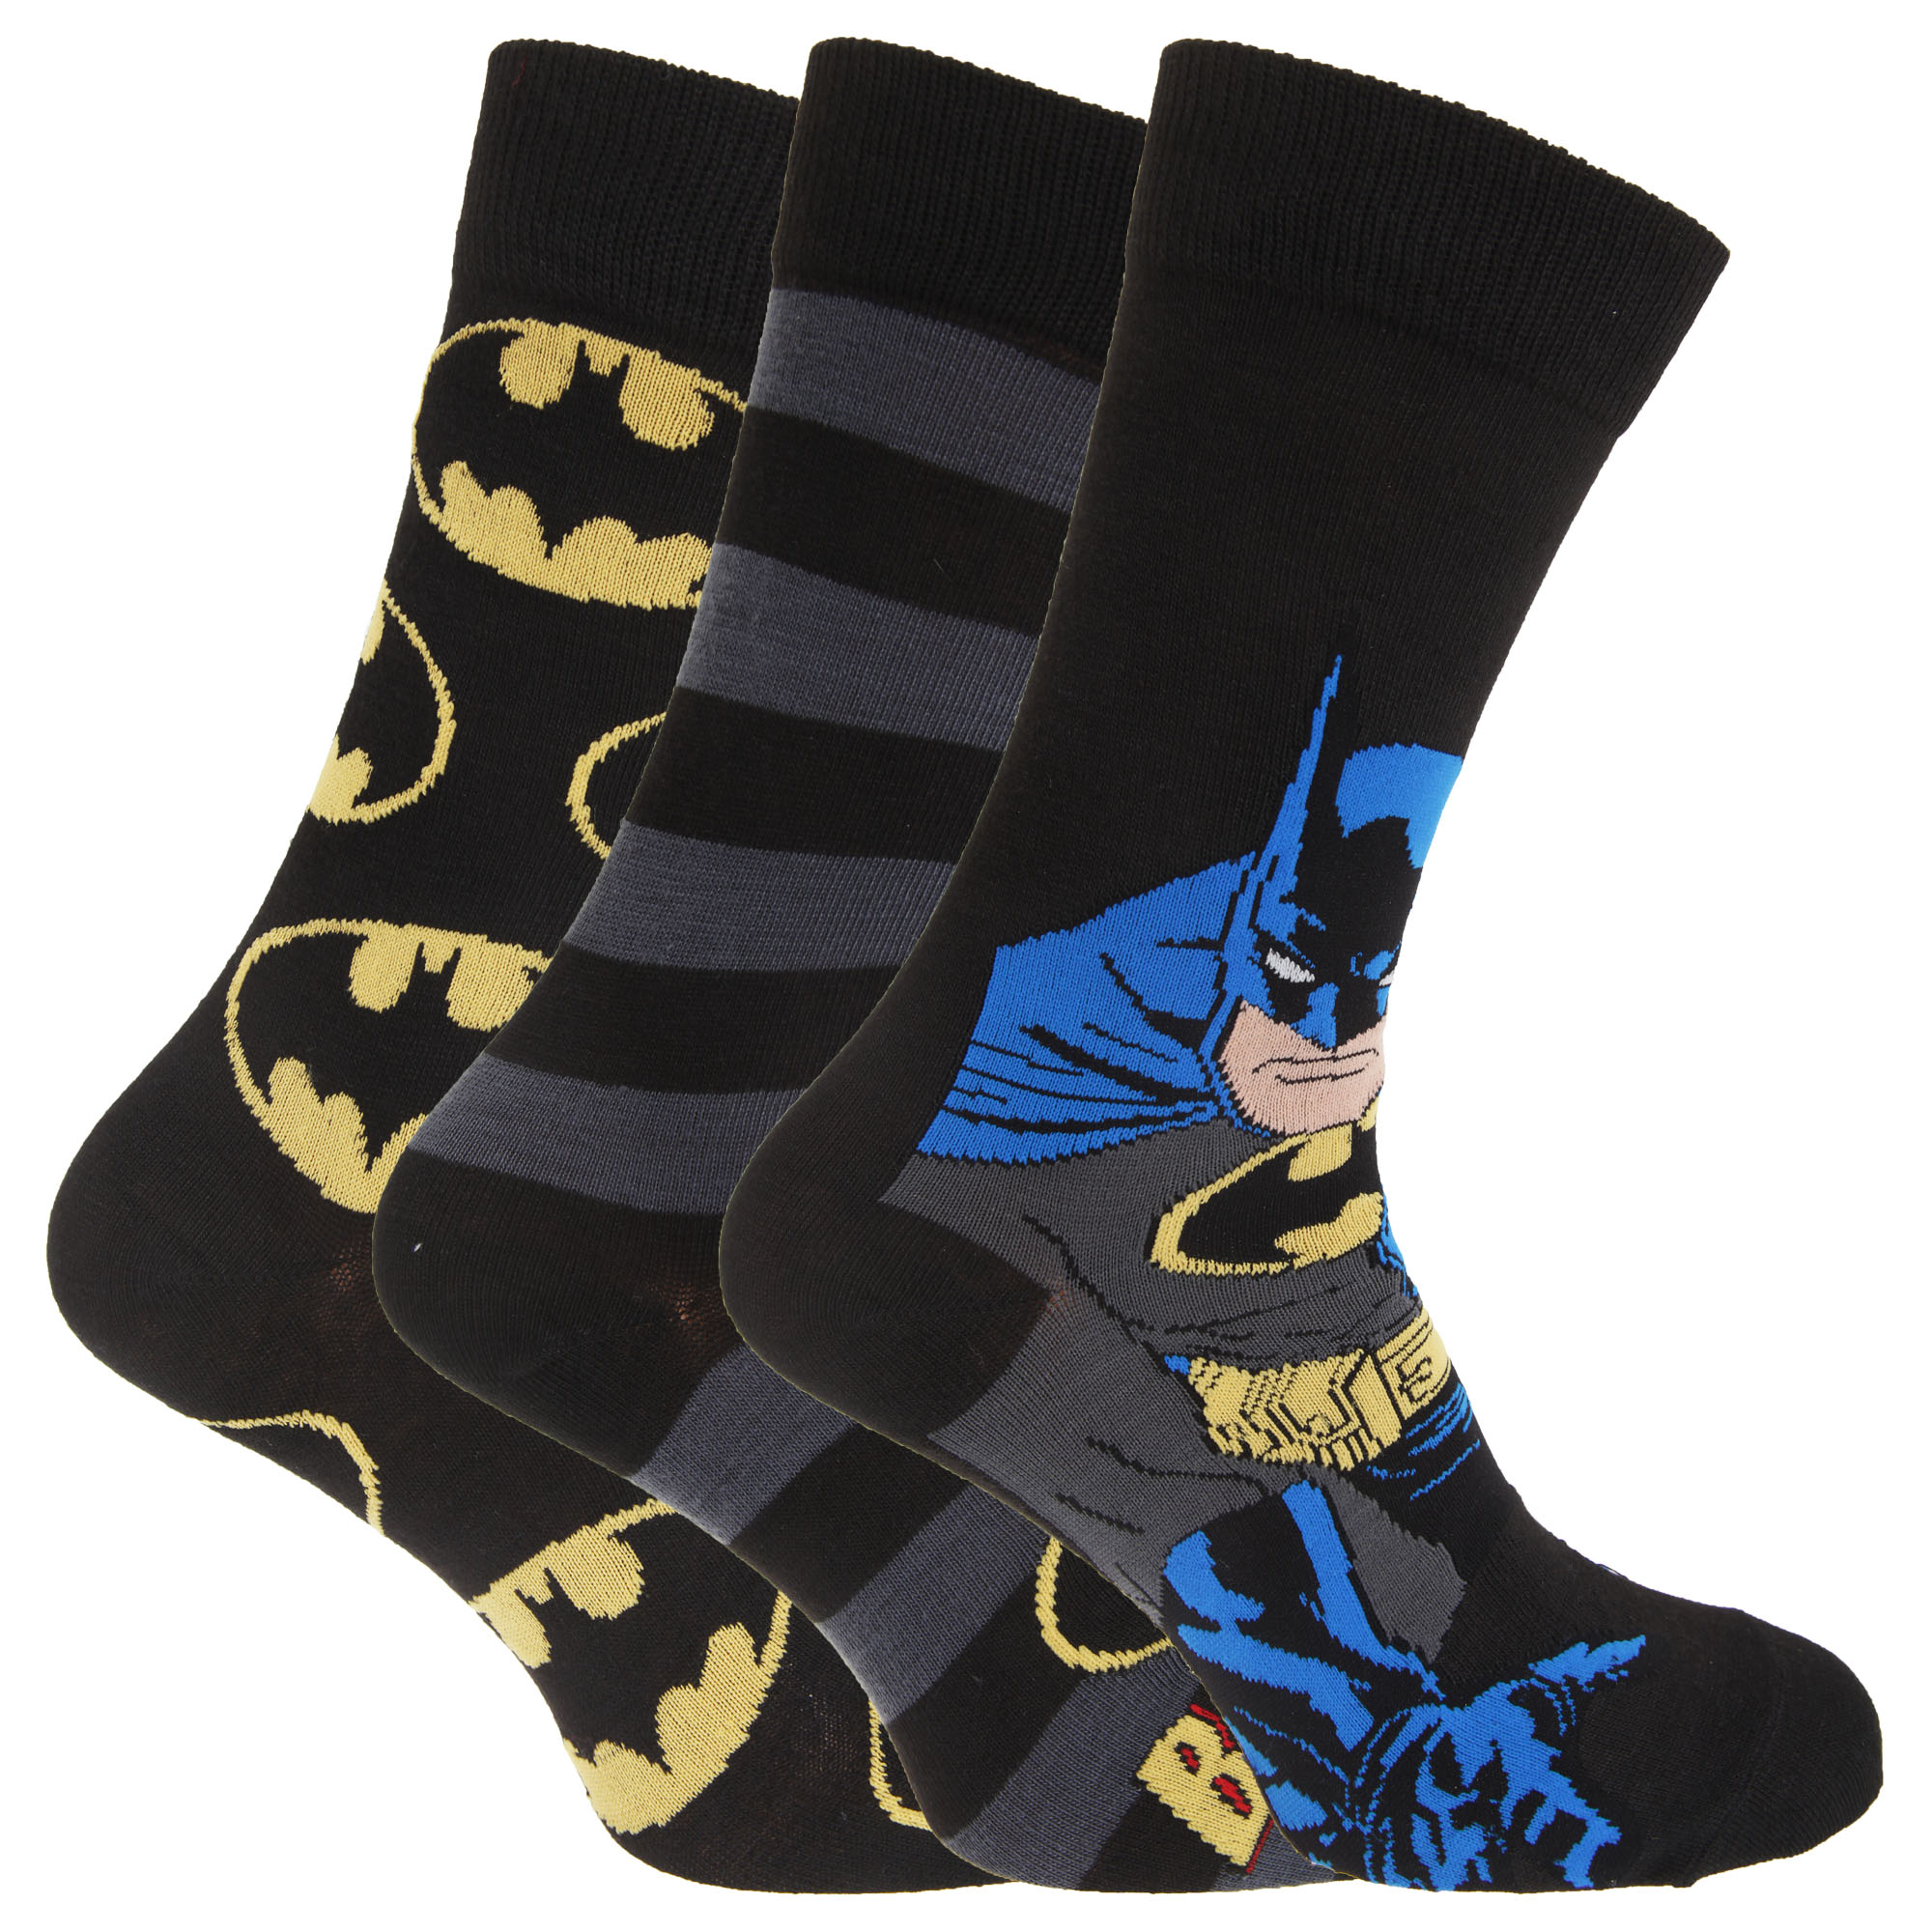 Shop for Batman® Socks Three Pack (Younger) at Next Australia. International shipping and returns available. Buy now!